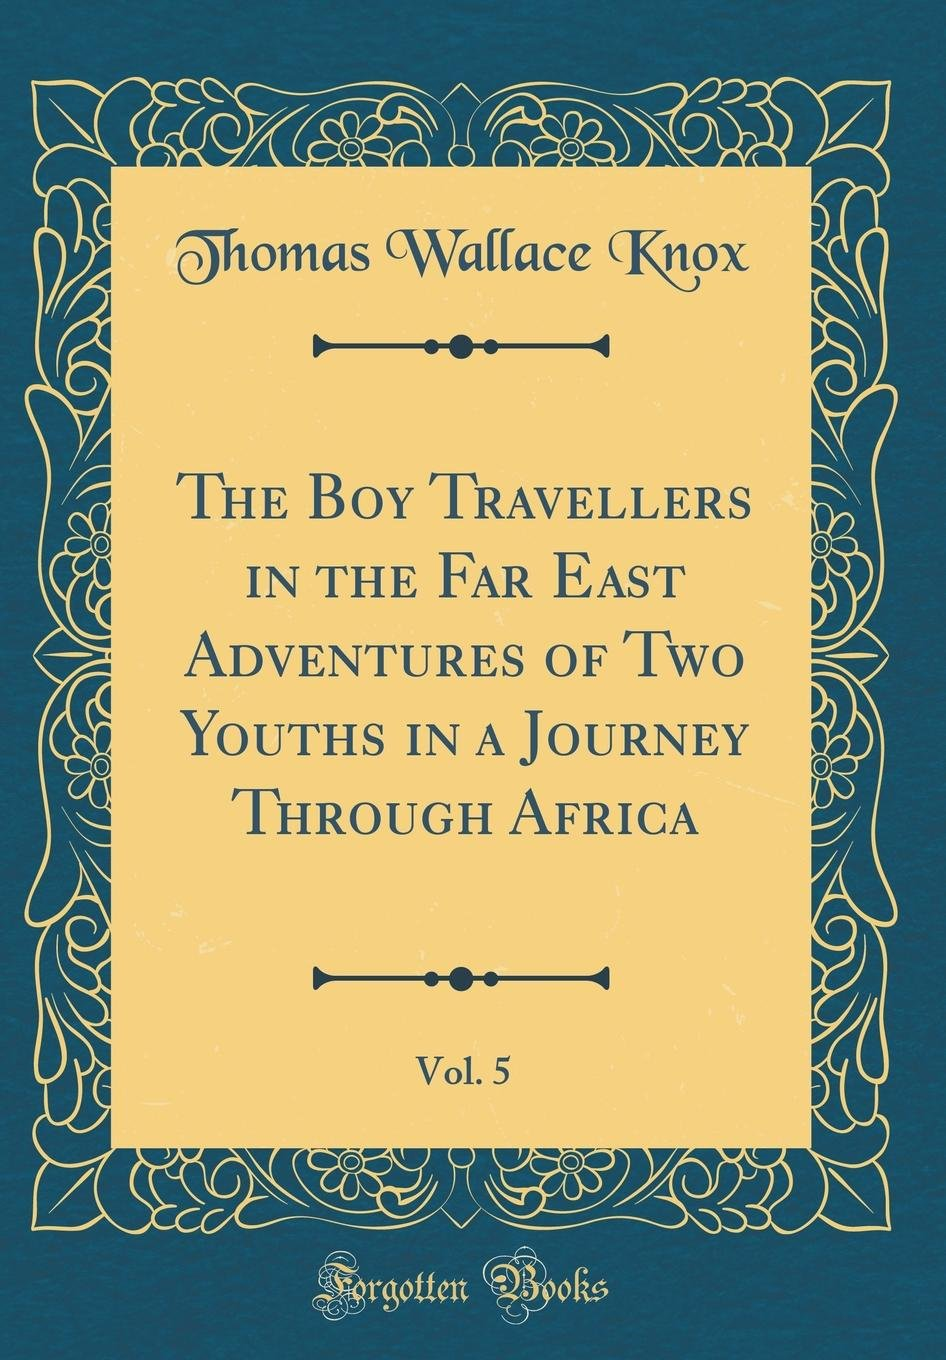 The Boy Travellers in the Far East Adventures of Two Youths in a Journey Through Africa, Vol. 5 (Classic Reprint) pdf epub